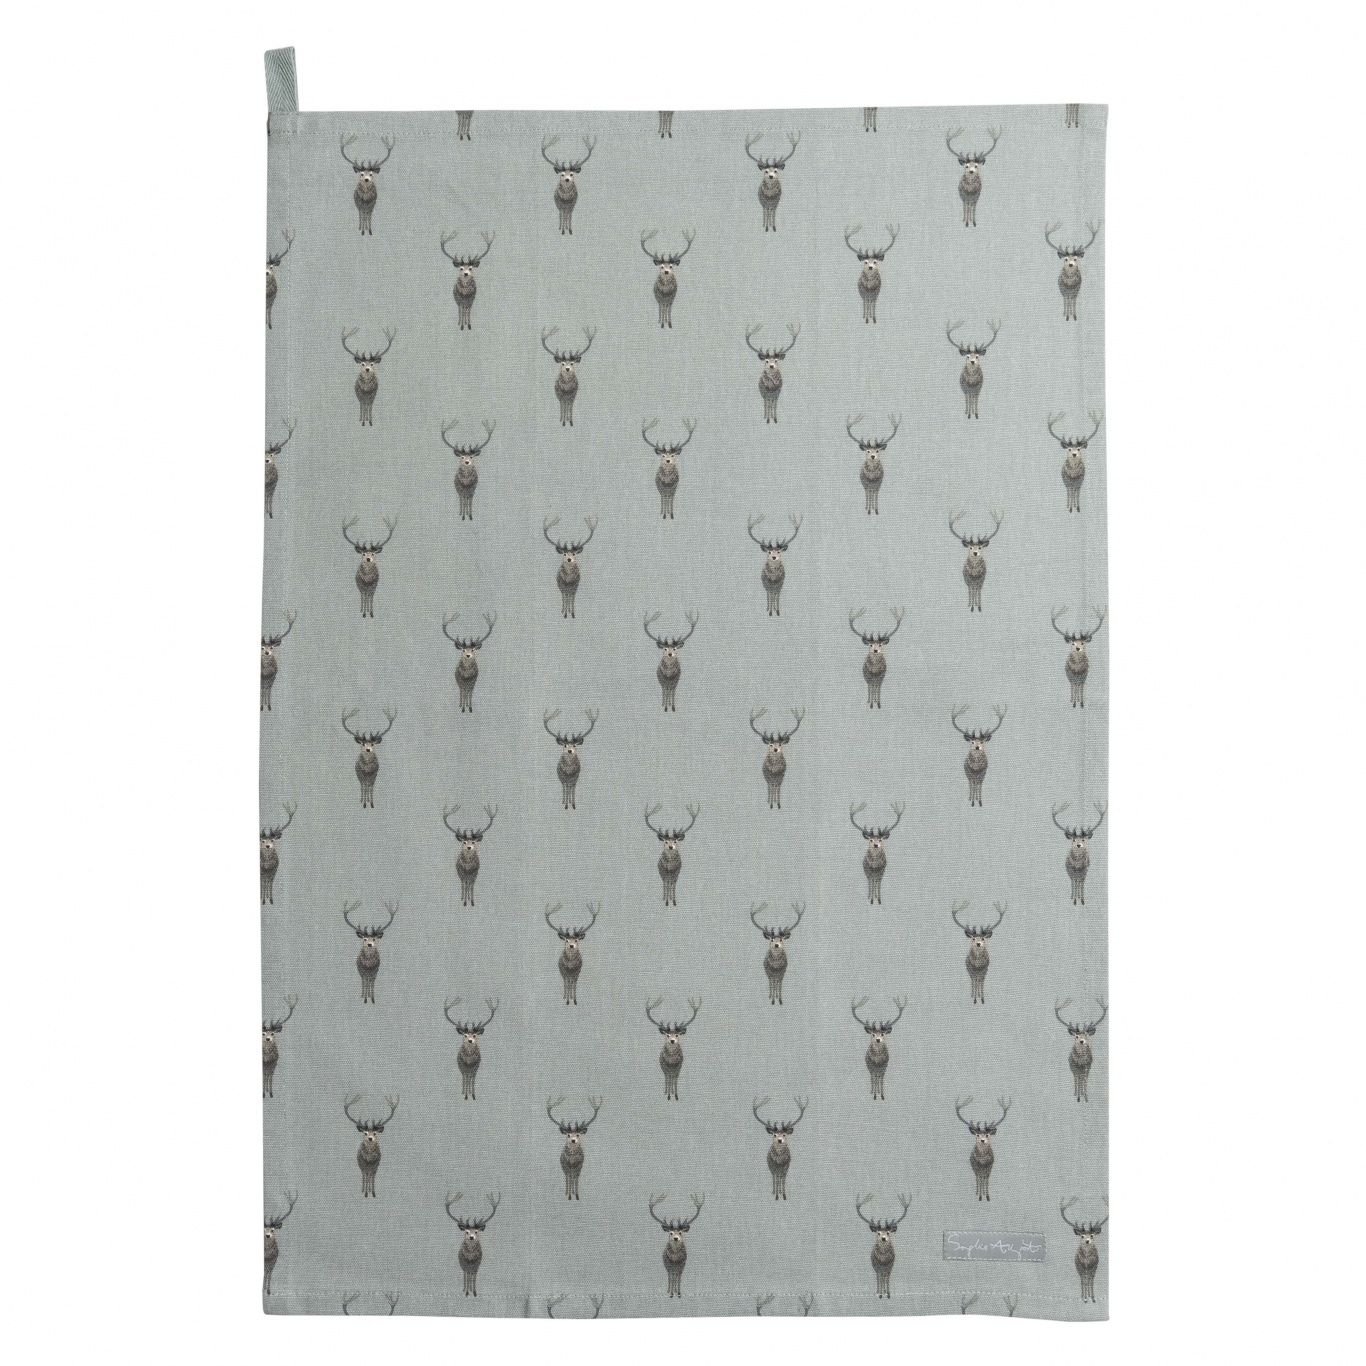 Image of Sophie Allport Highland Stag Tea Towel